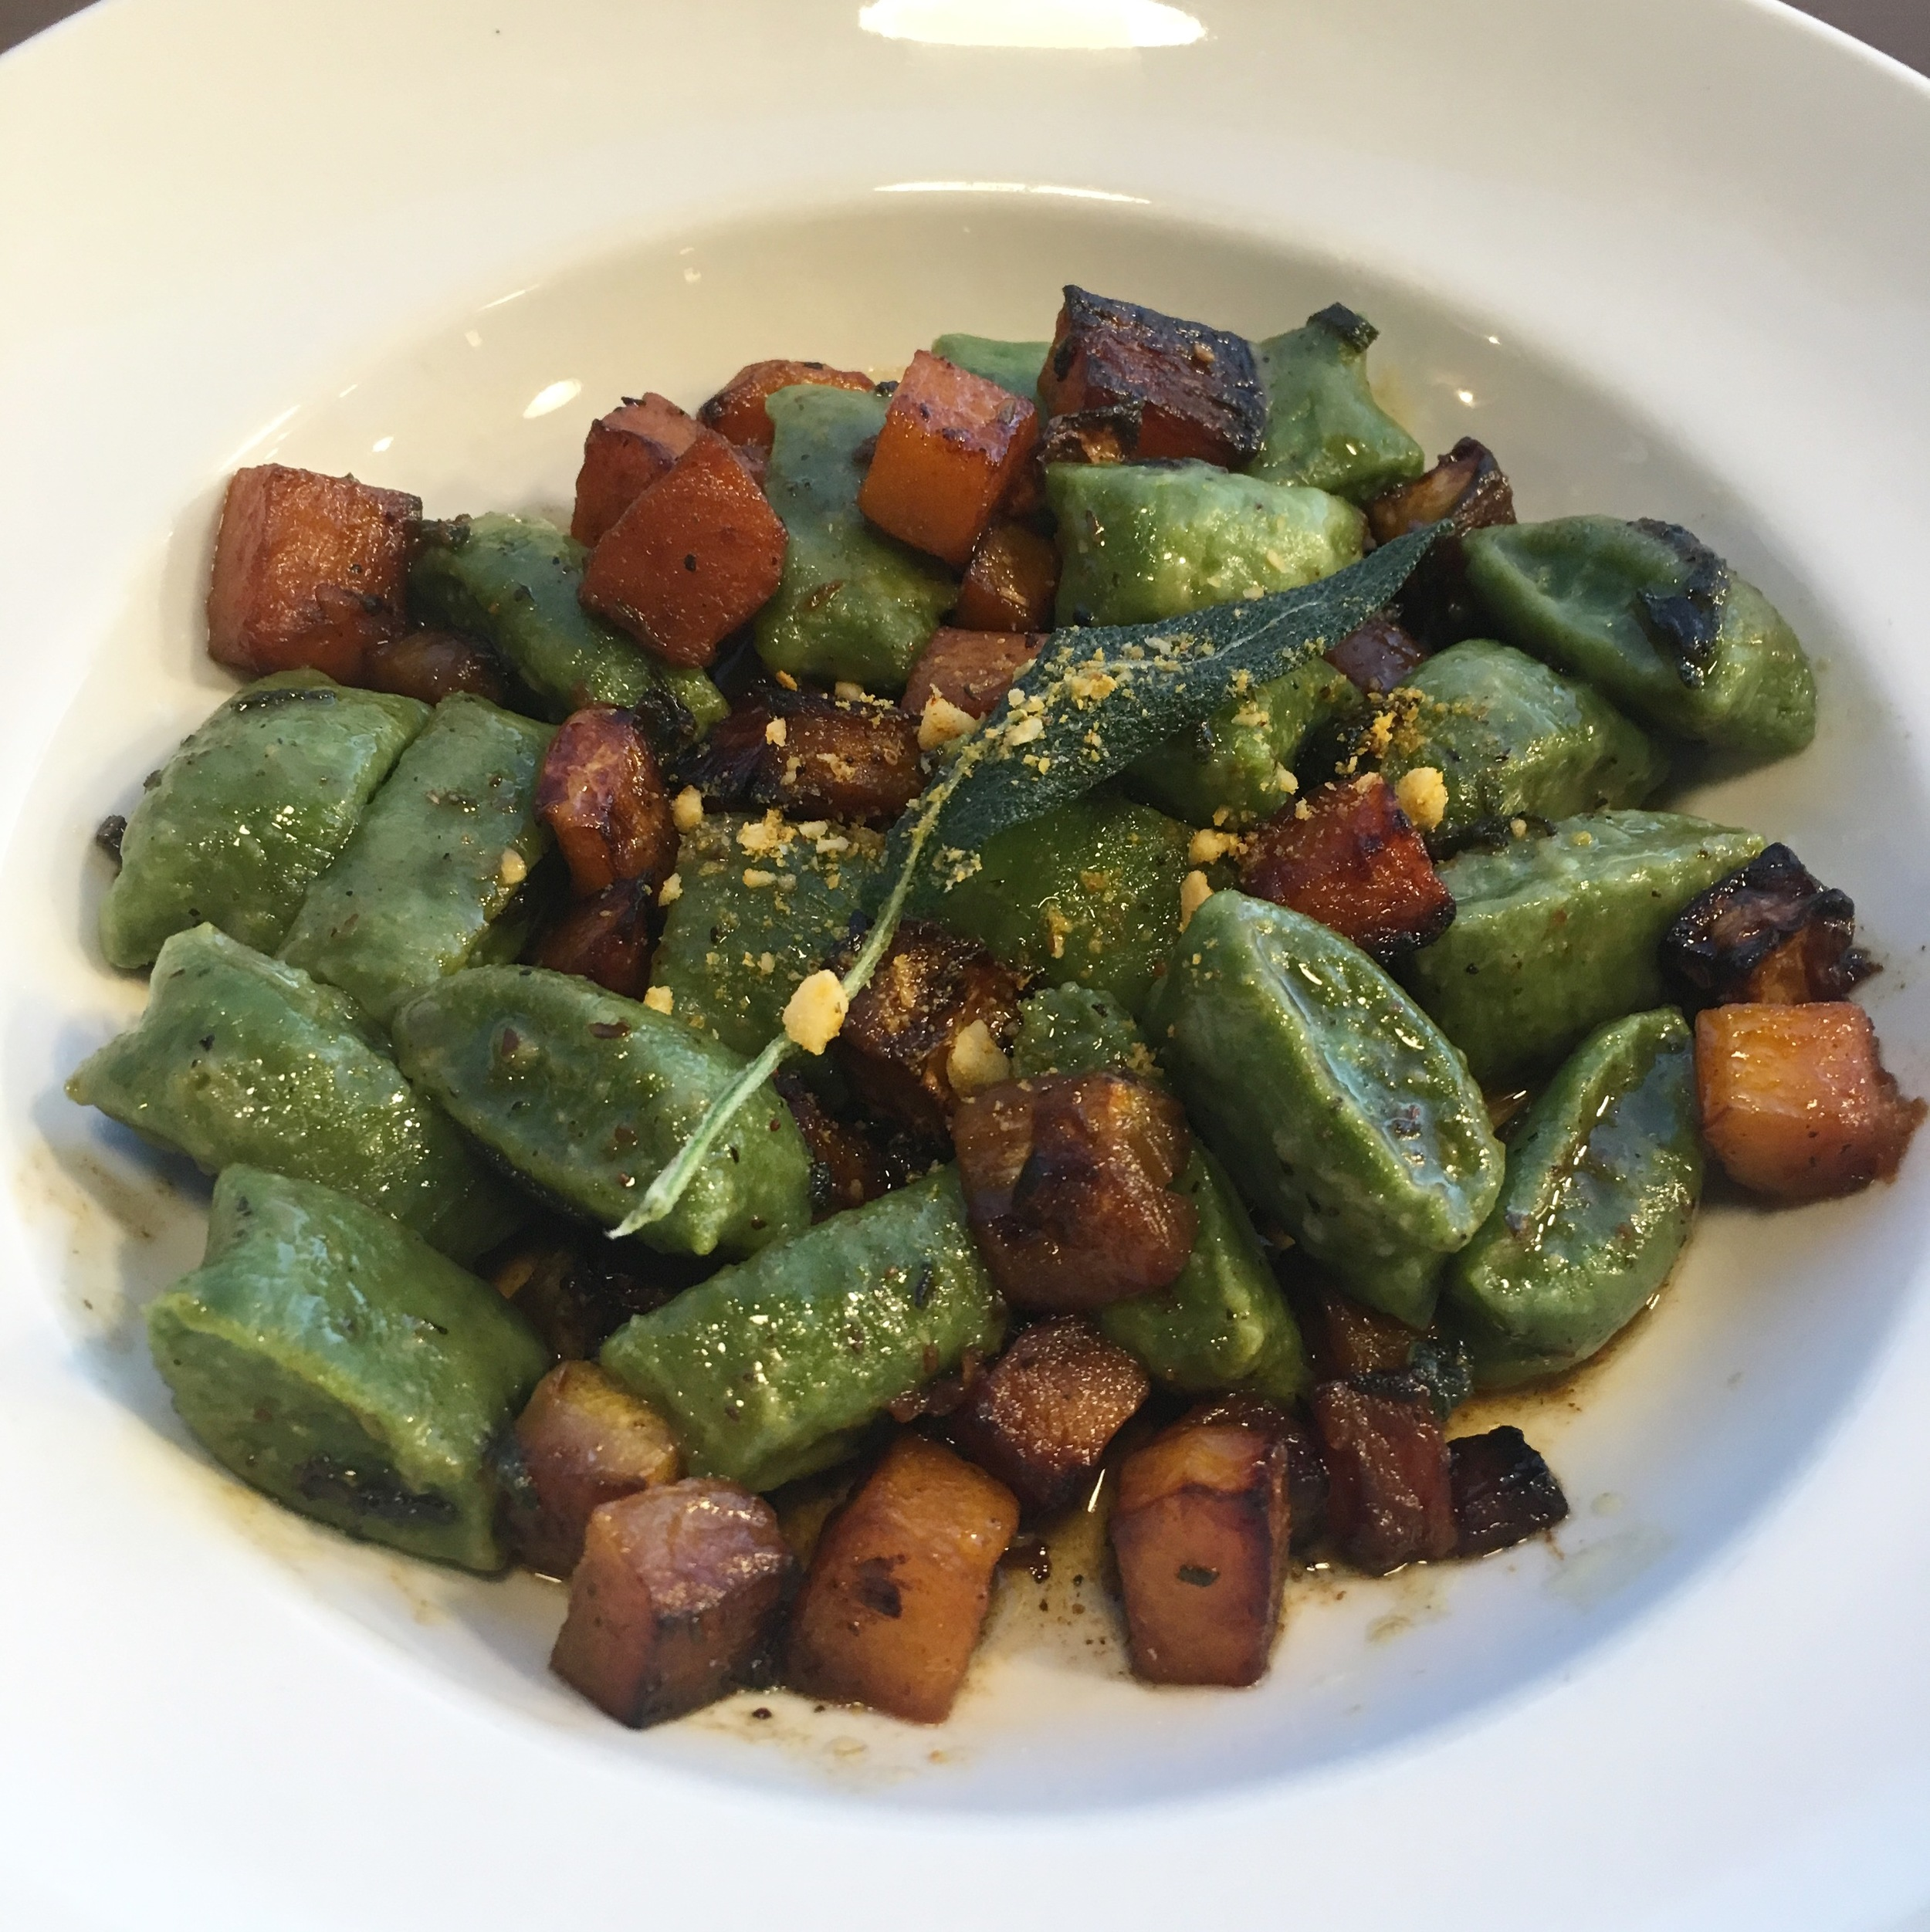 Dinner Entree One: Spinach rictotta gnocchi  with a butternut squash sage sauce.